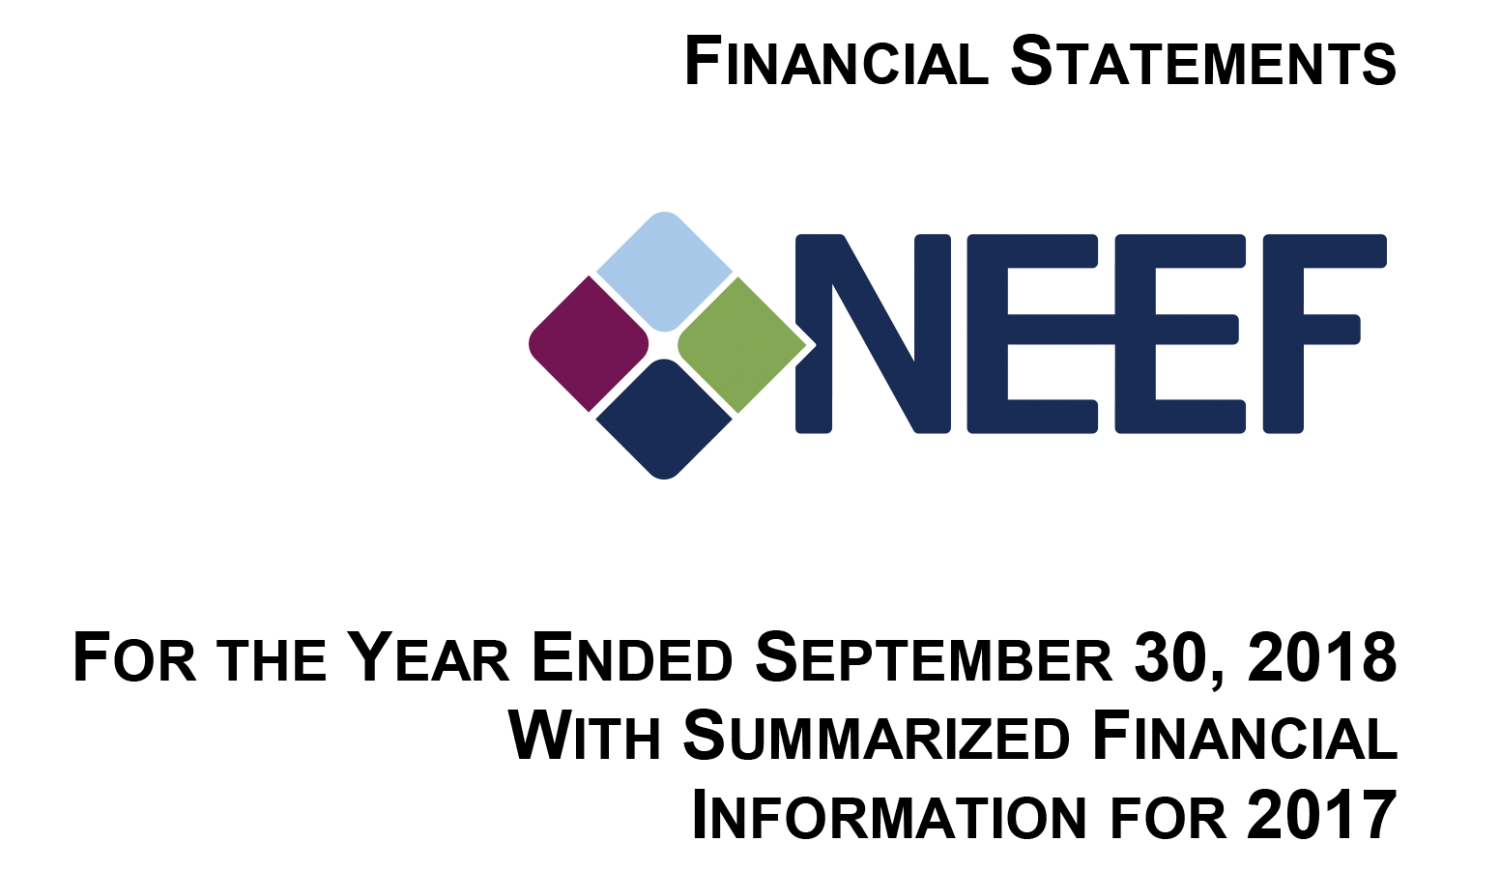 NEEF Financial Statements: For the Year Ended September 30, 2018 with Summarized Financial Information for 2017